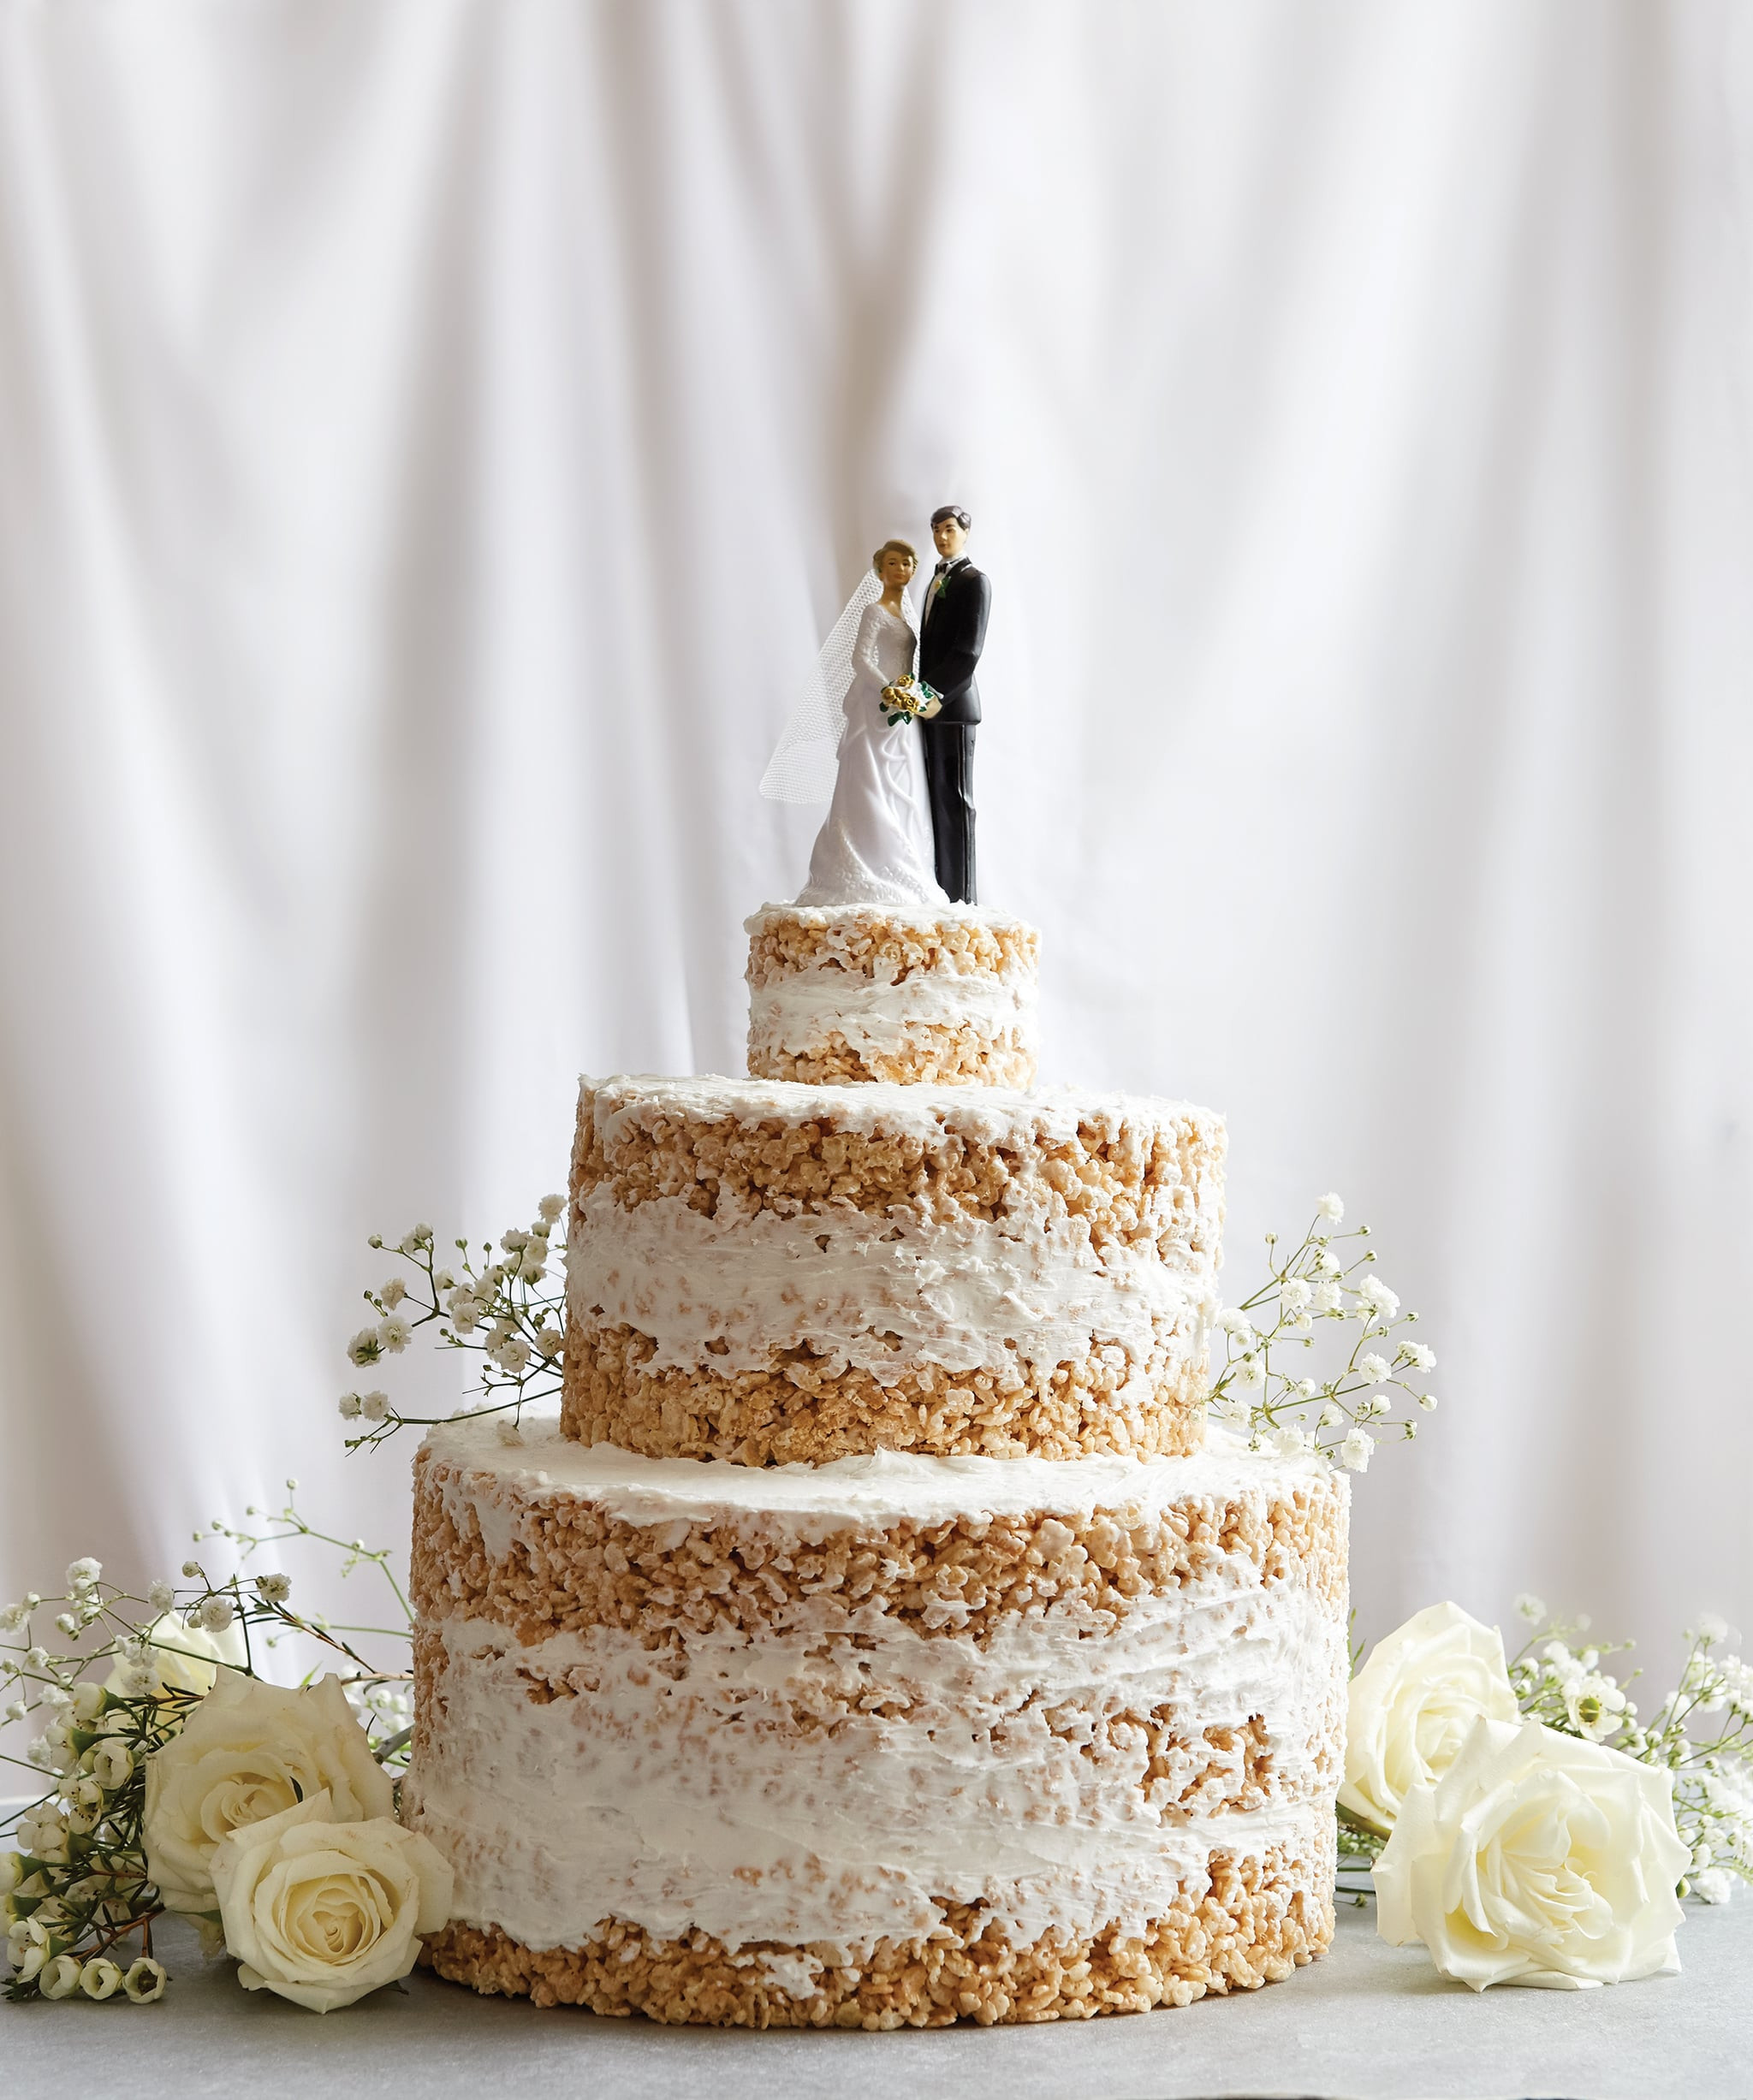 Recipe For Wedding Cakes  No Bake Rice Krispies Wedding Cake Recipe